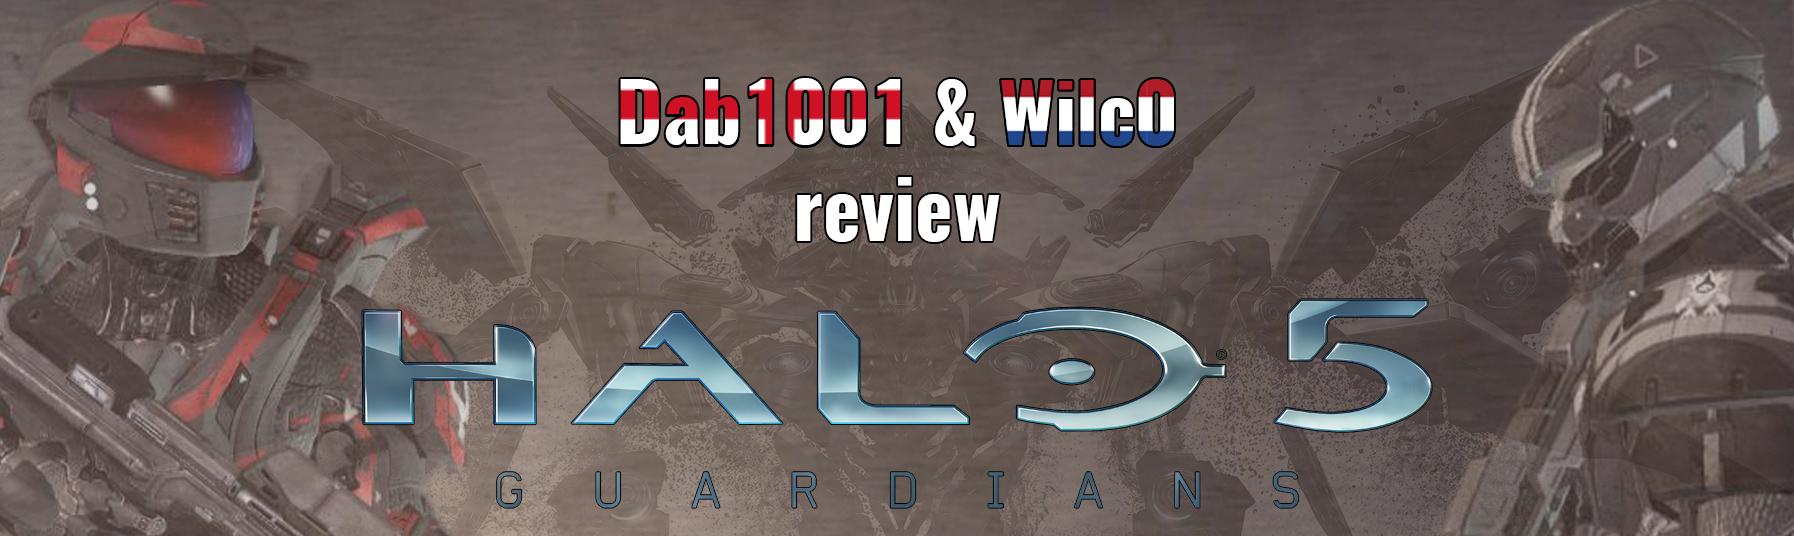 USER_Dab1001_-_Dab_and_Wilc0_Review_H5_-_Banner.png